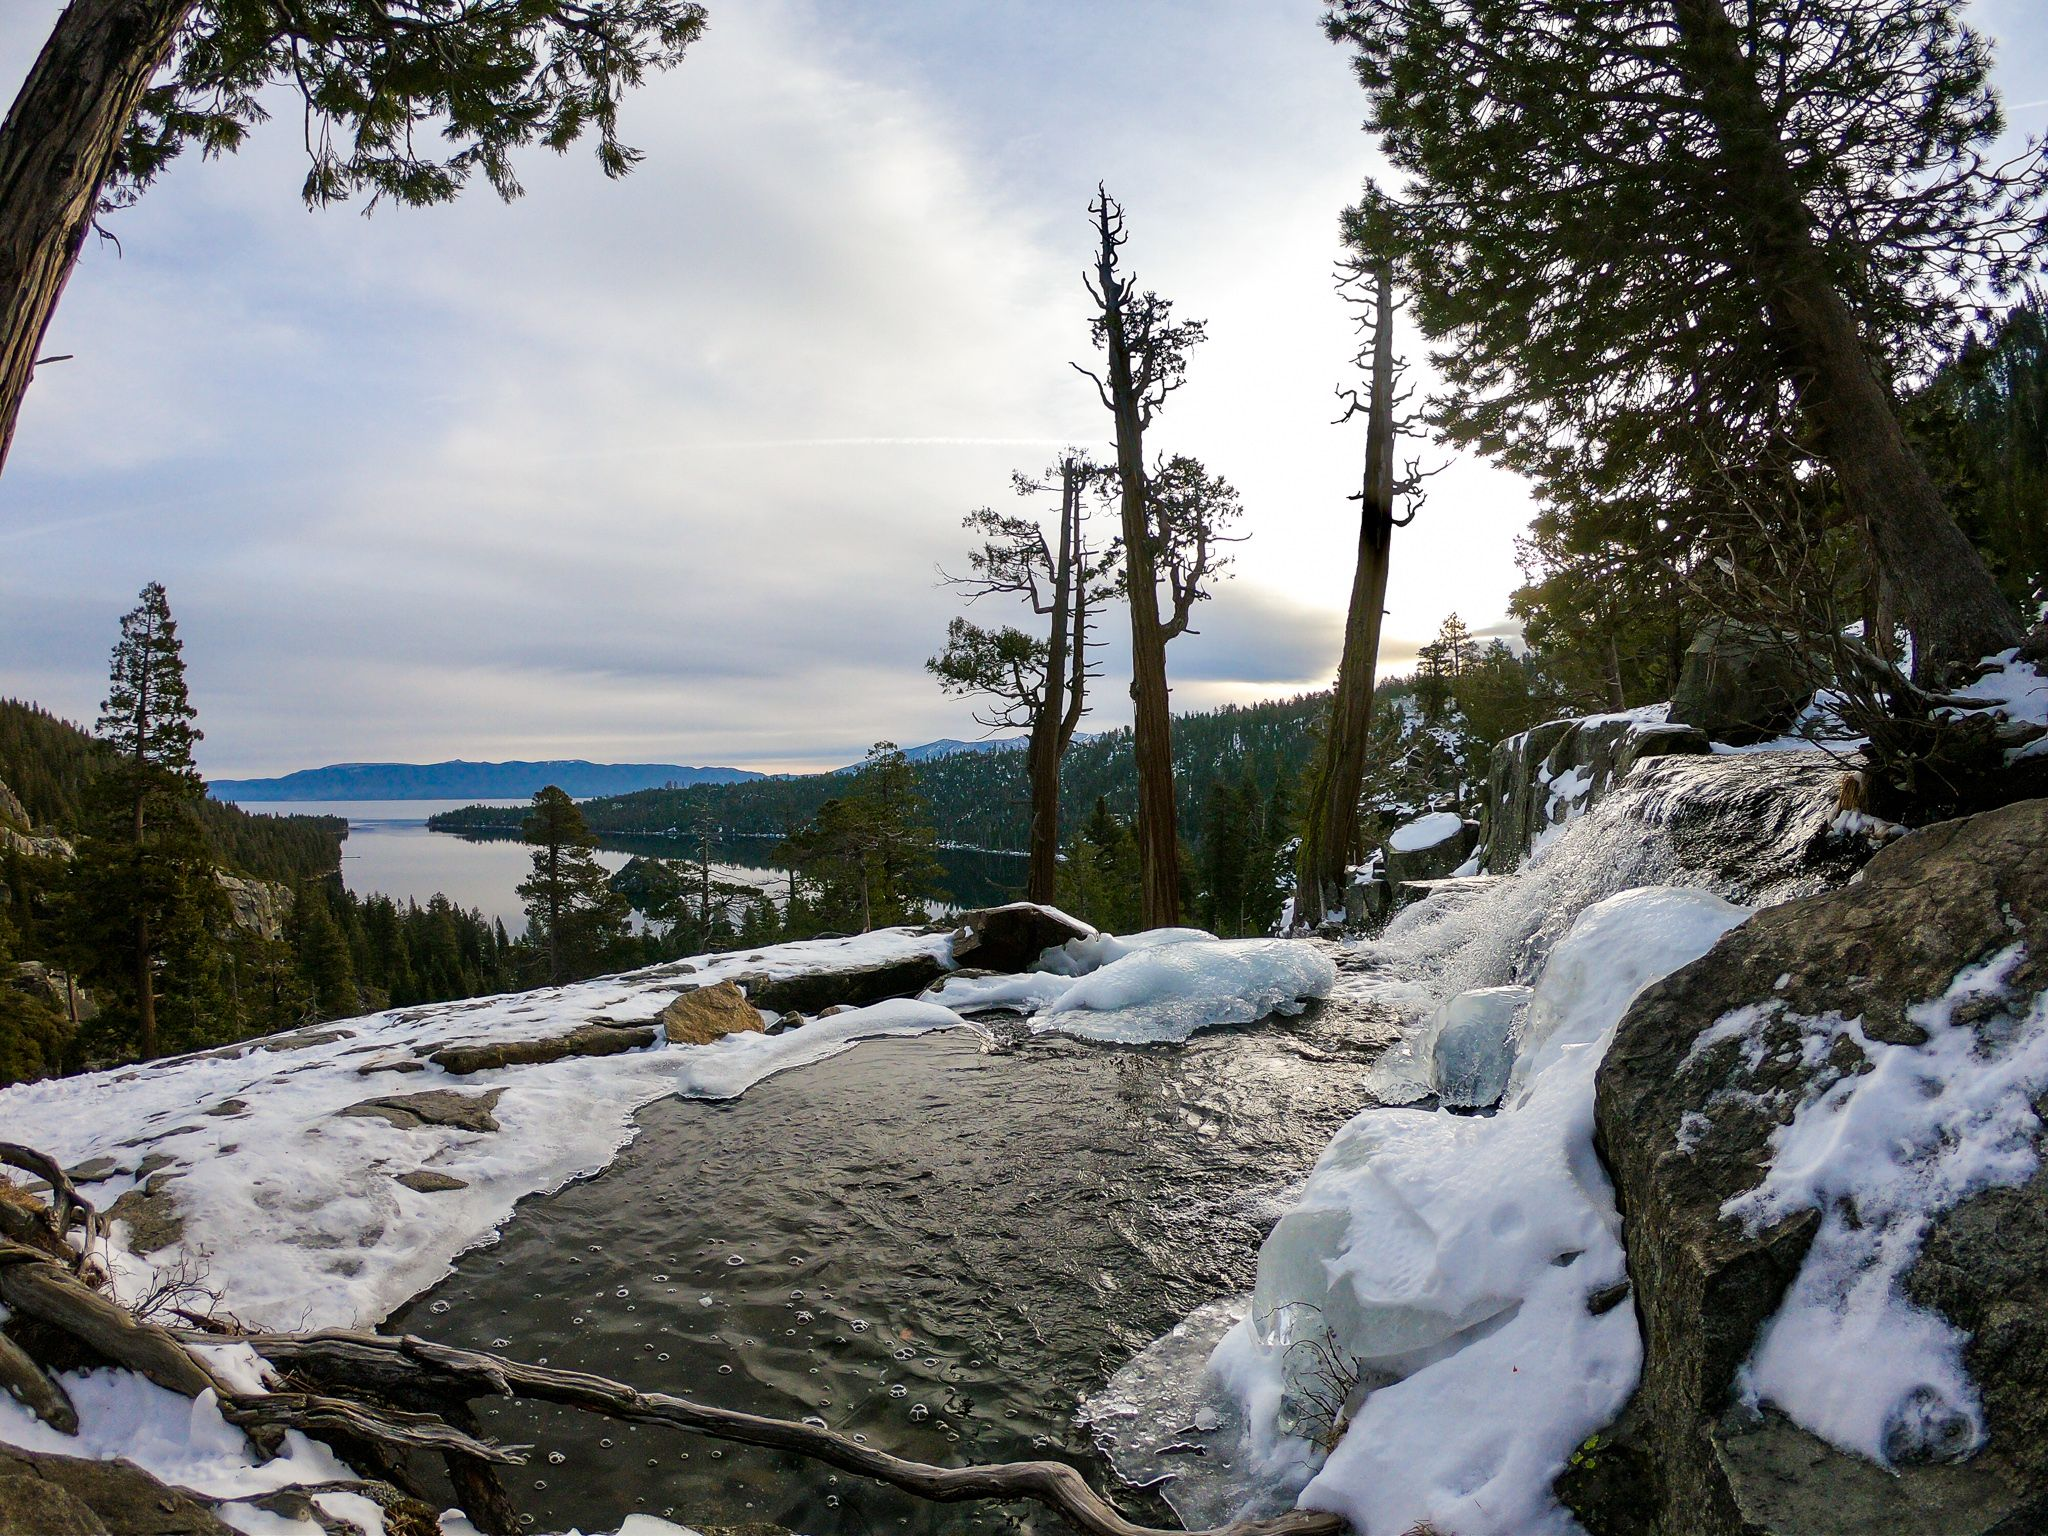 5 Of The Most Breath Taking Lake Tahoe Hikes Fab 50 Lake Tahoe Hiking Lake Tahoe Tahoe Weather